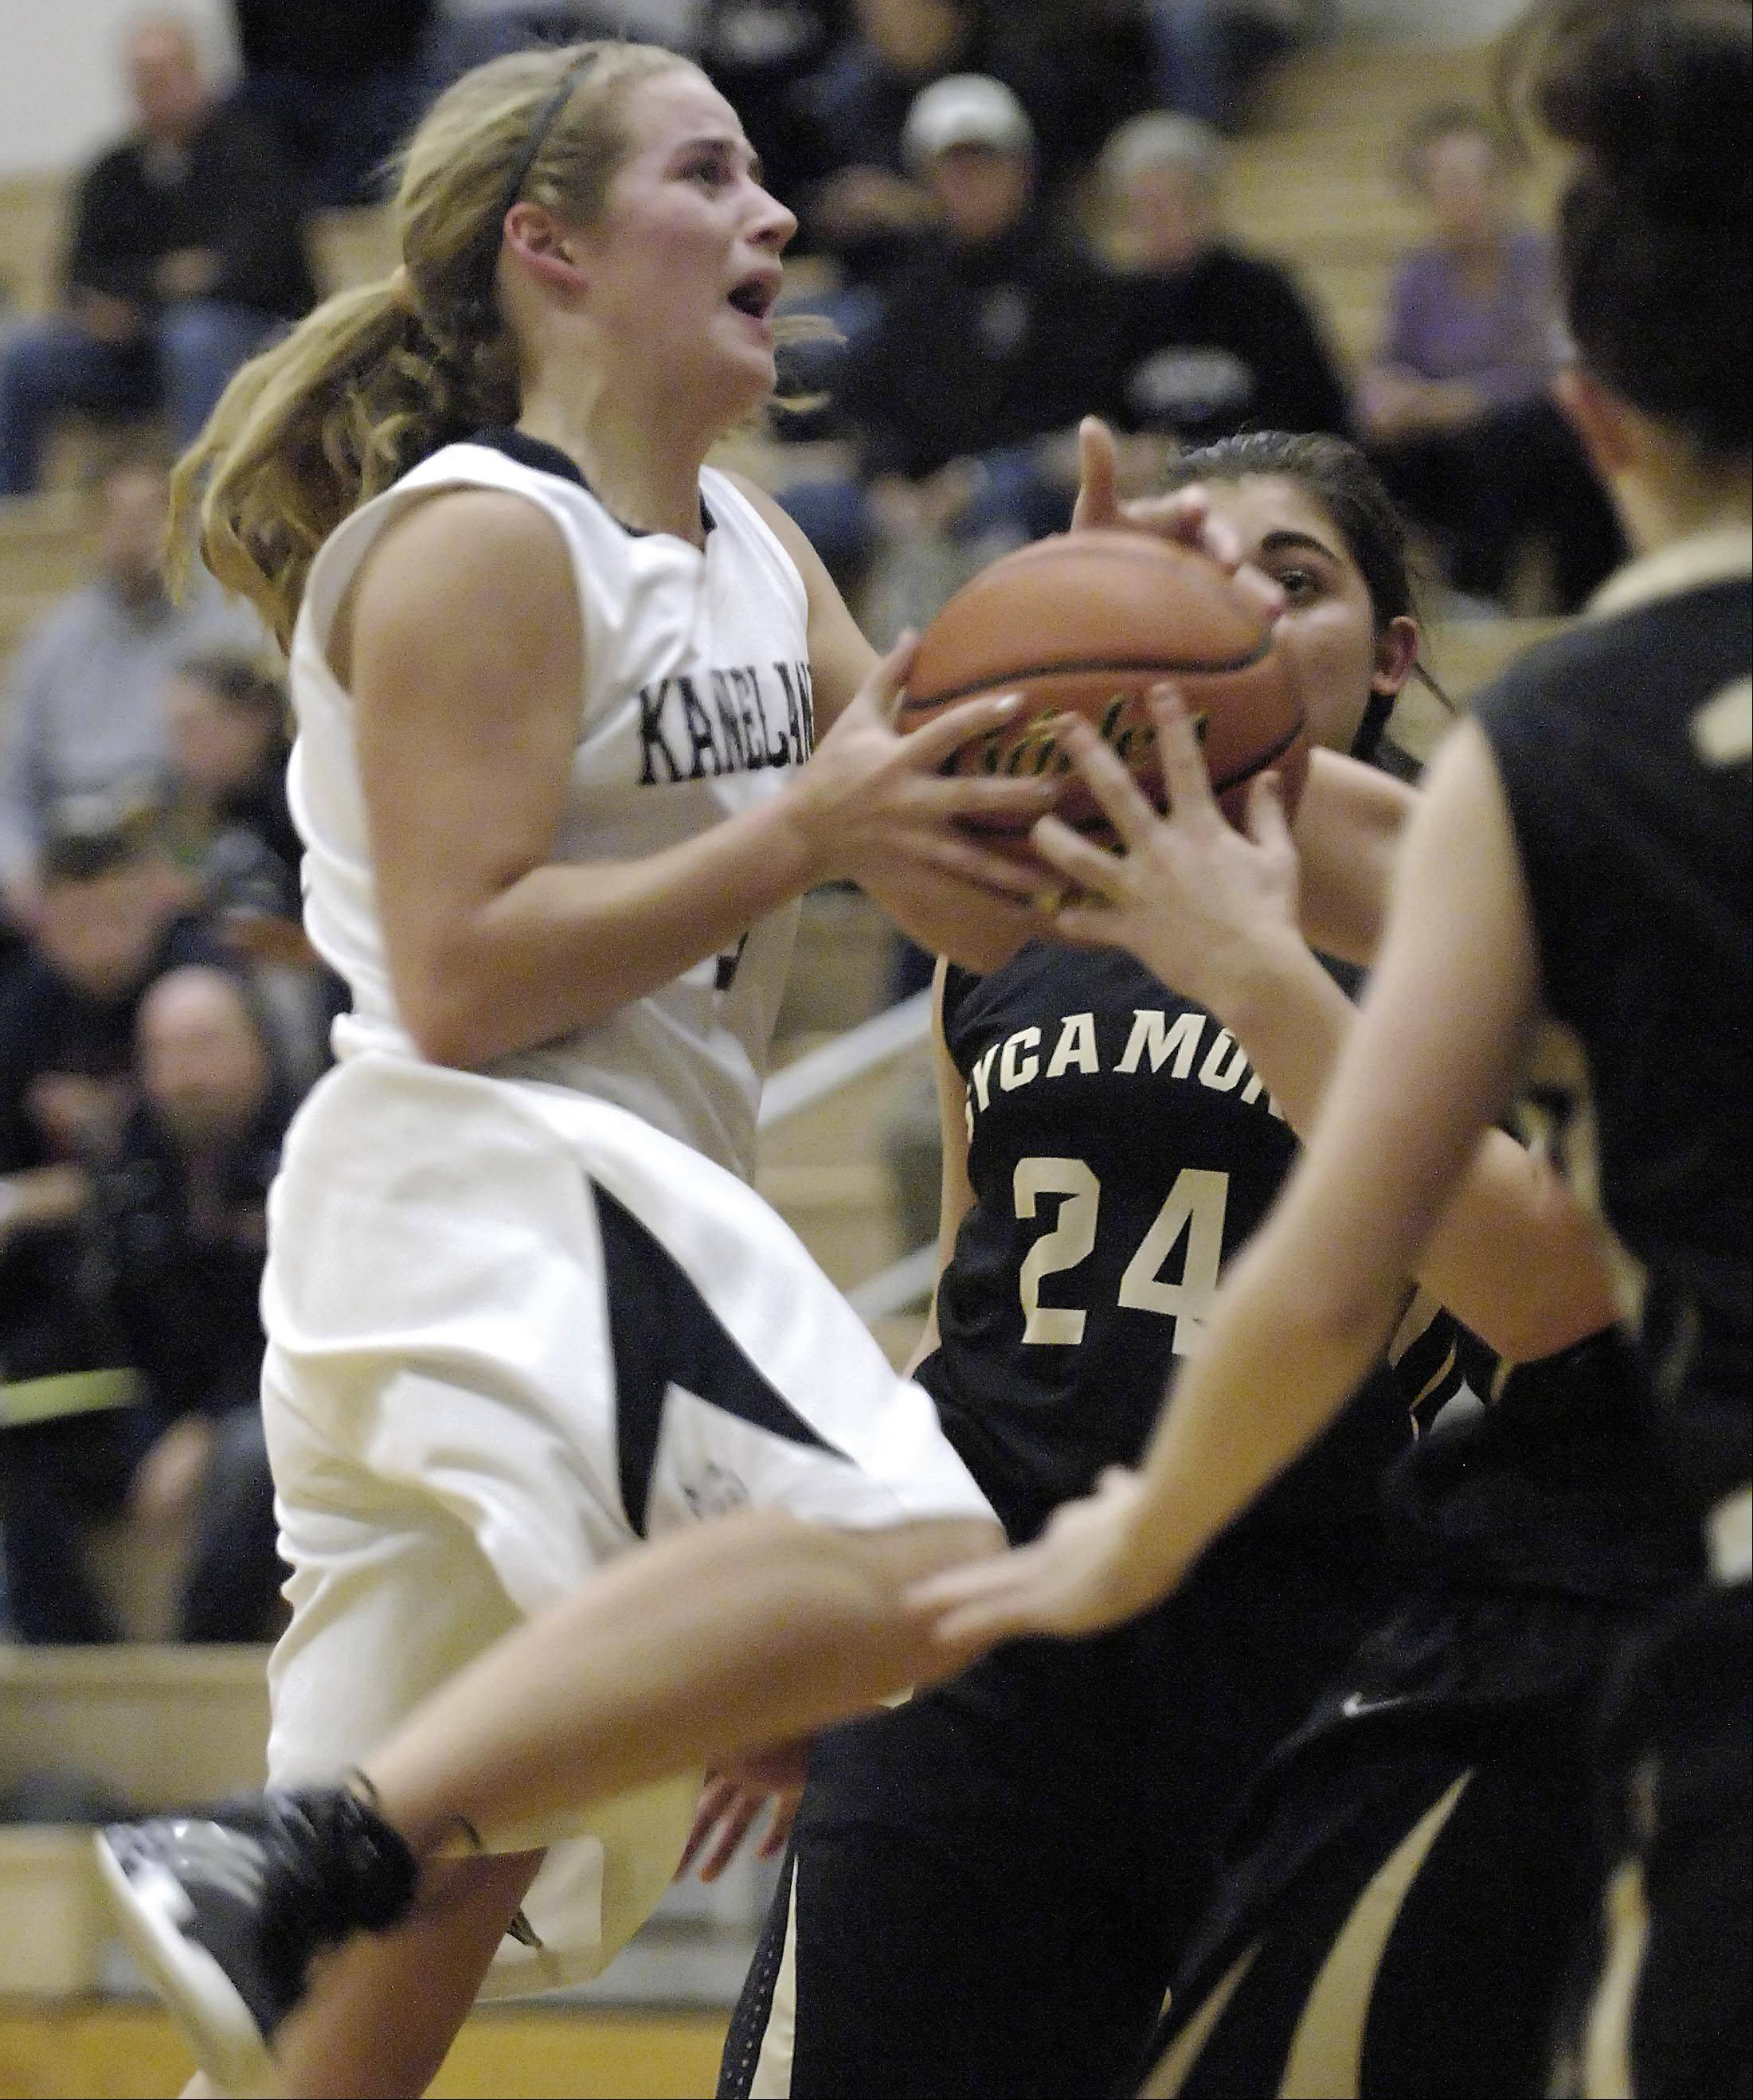 Kaneland's Sarah Grams is fouled as she drives into a group of Sycamore players.